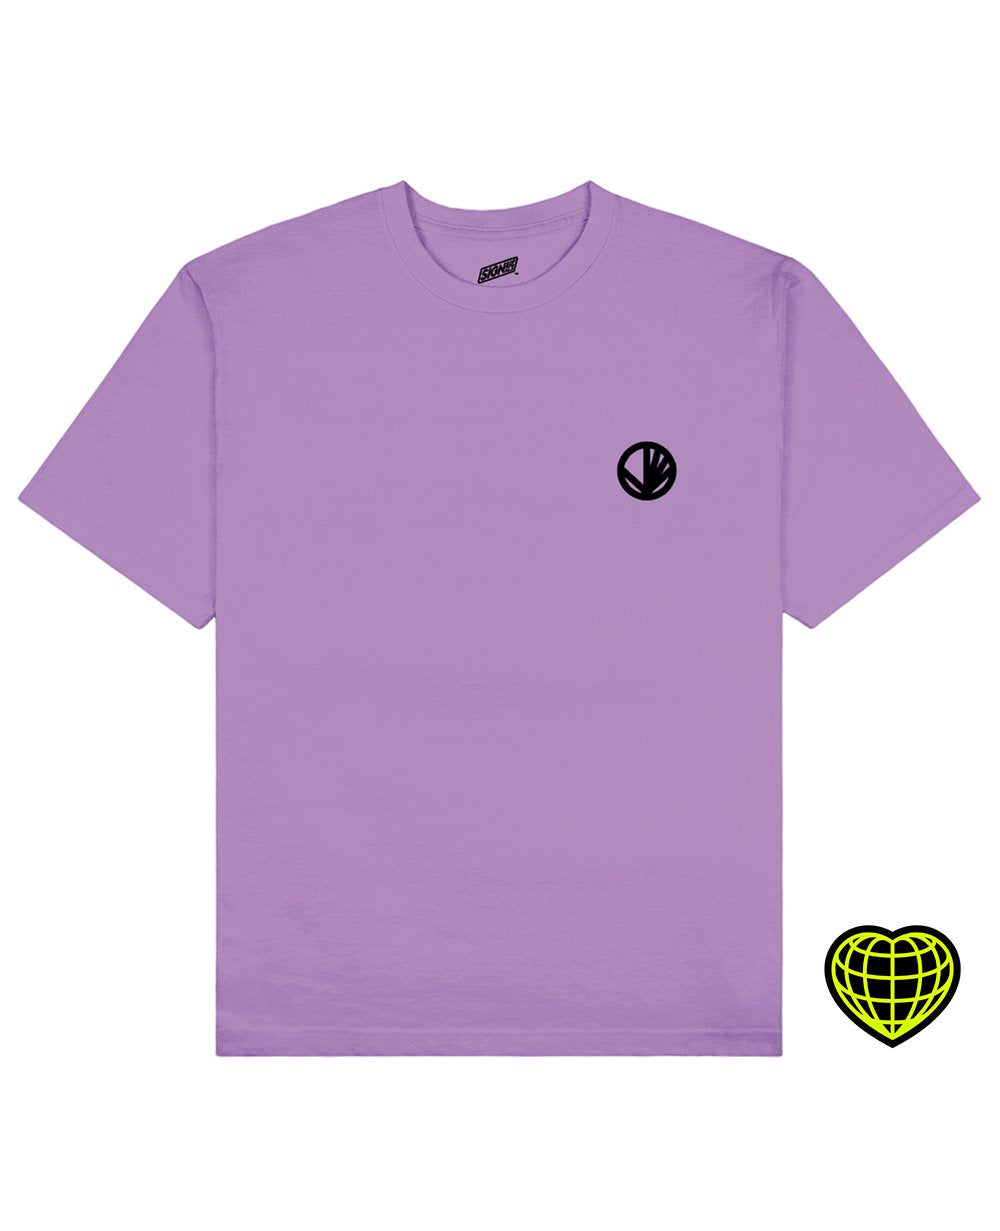 Circle with beams Print T-shirt in Light Purple - T-Shirts - Signs of Signals - BRANMA